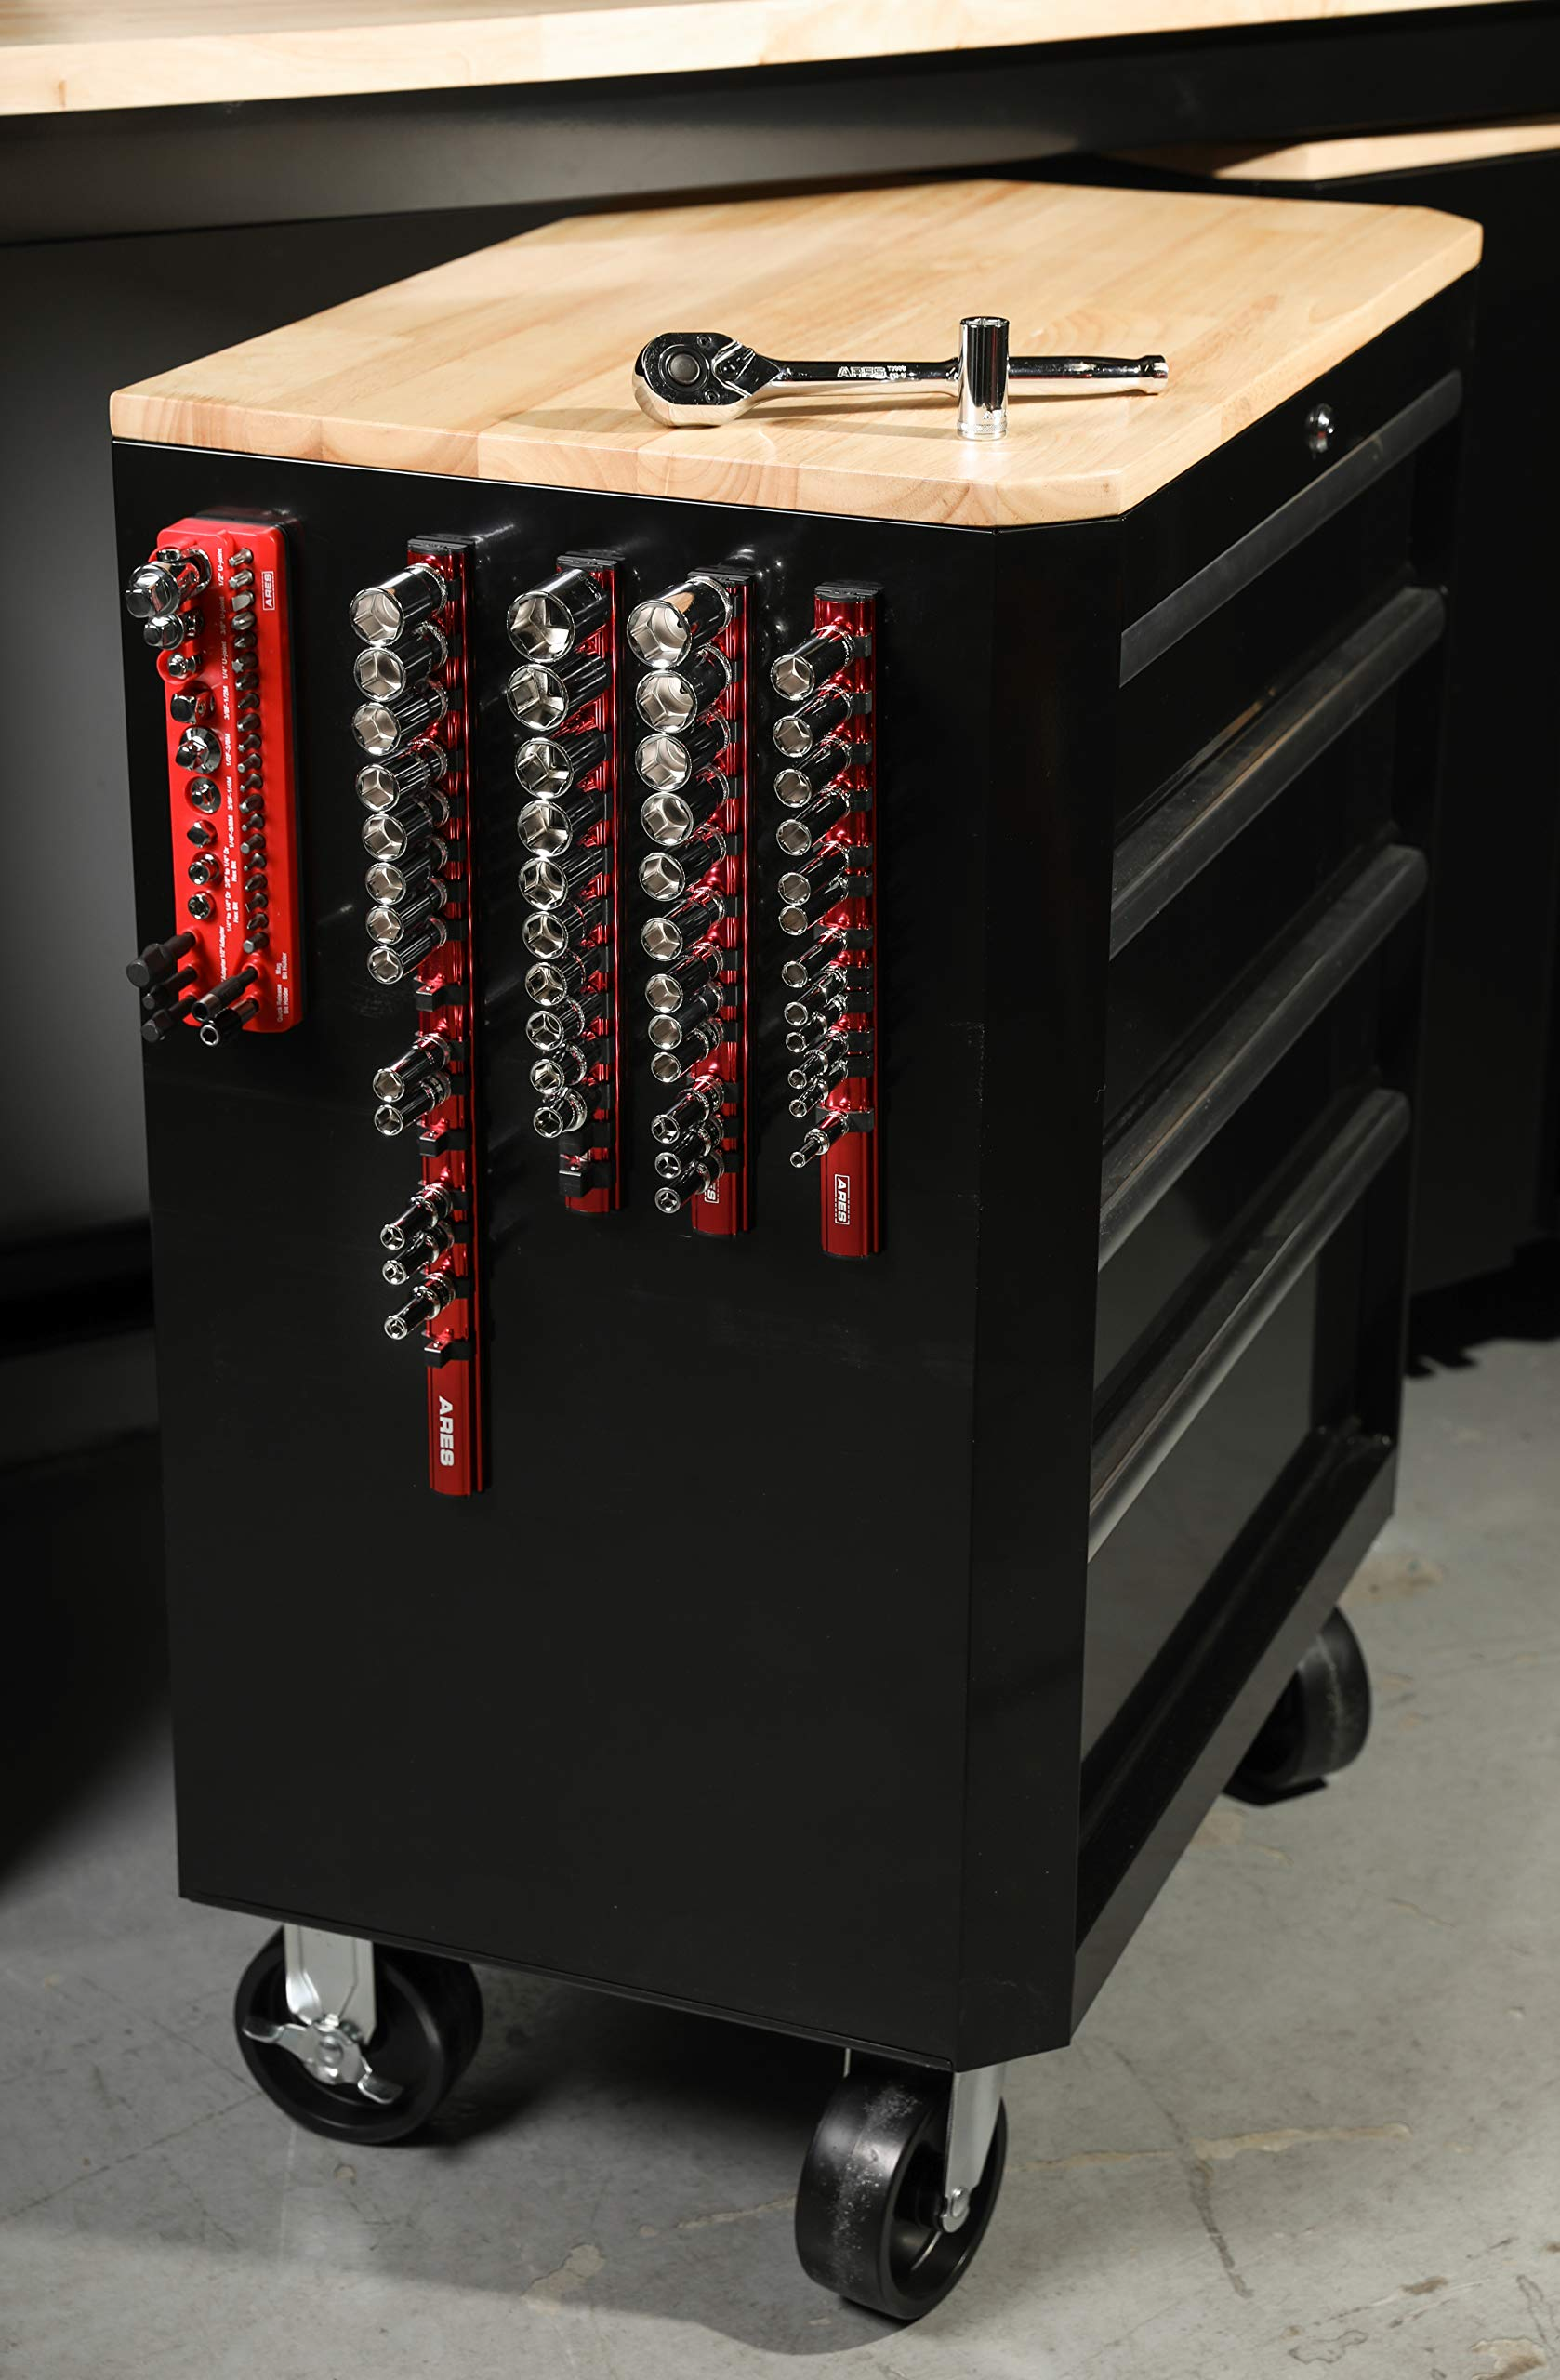 ARES 71181 | 3/8-Inch Drive Magnetic Socket Organizer | Aluminum Rail Stores up to 12 Sockets and Keeps Your Tool Box Organized by ARES (Image #5)